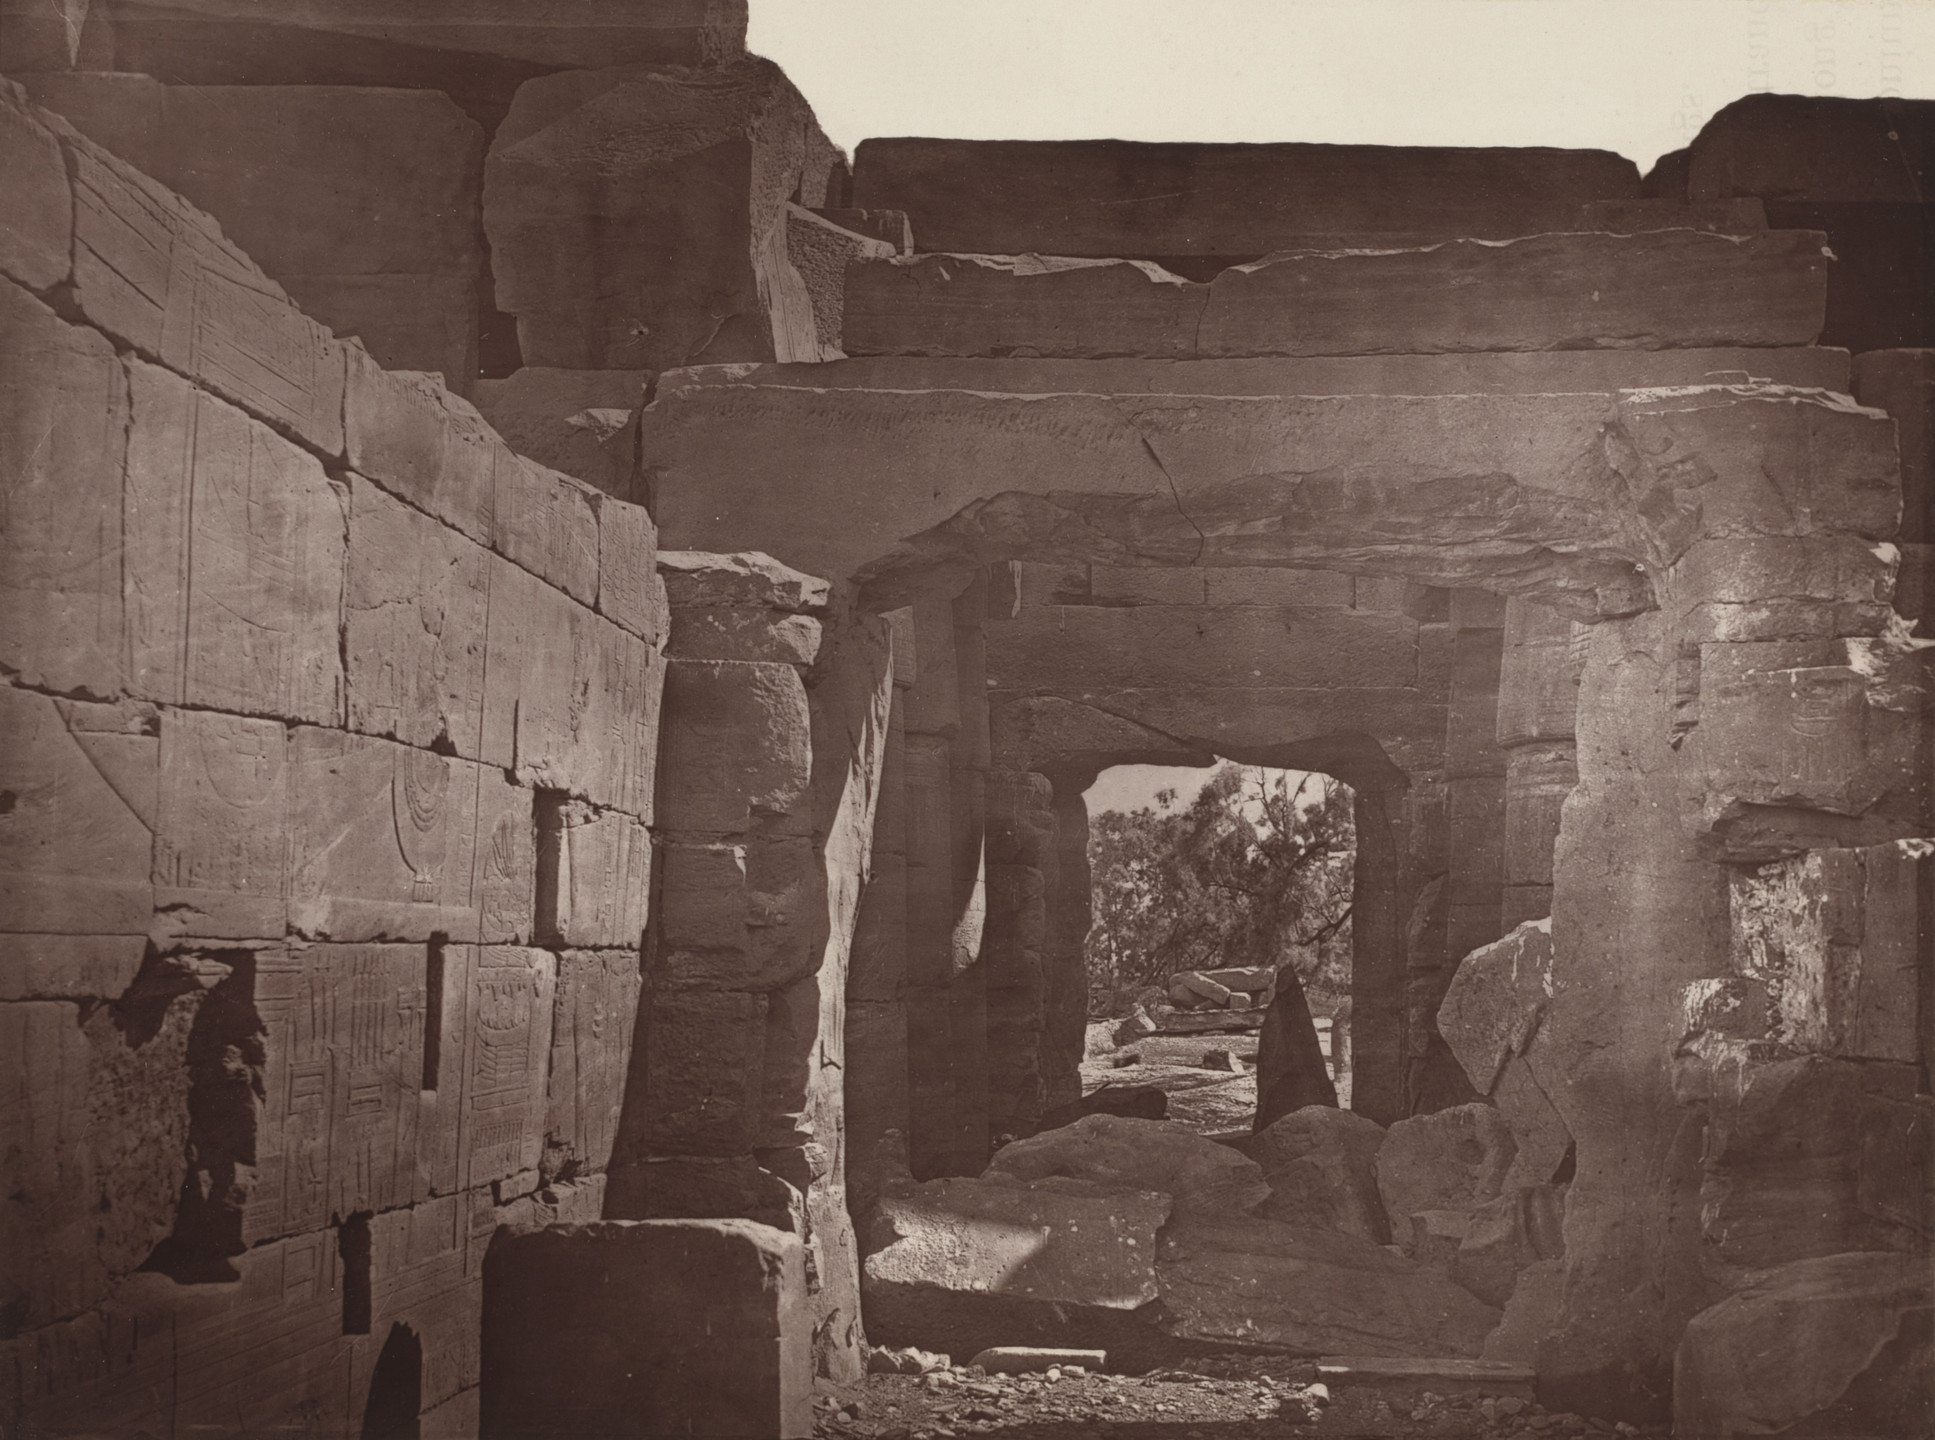 Captain William de Wiveleslie Abney. Interior View of the Tmeple of Goorneh. 1876